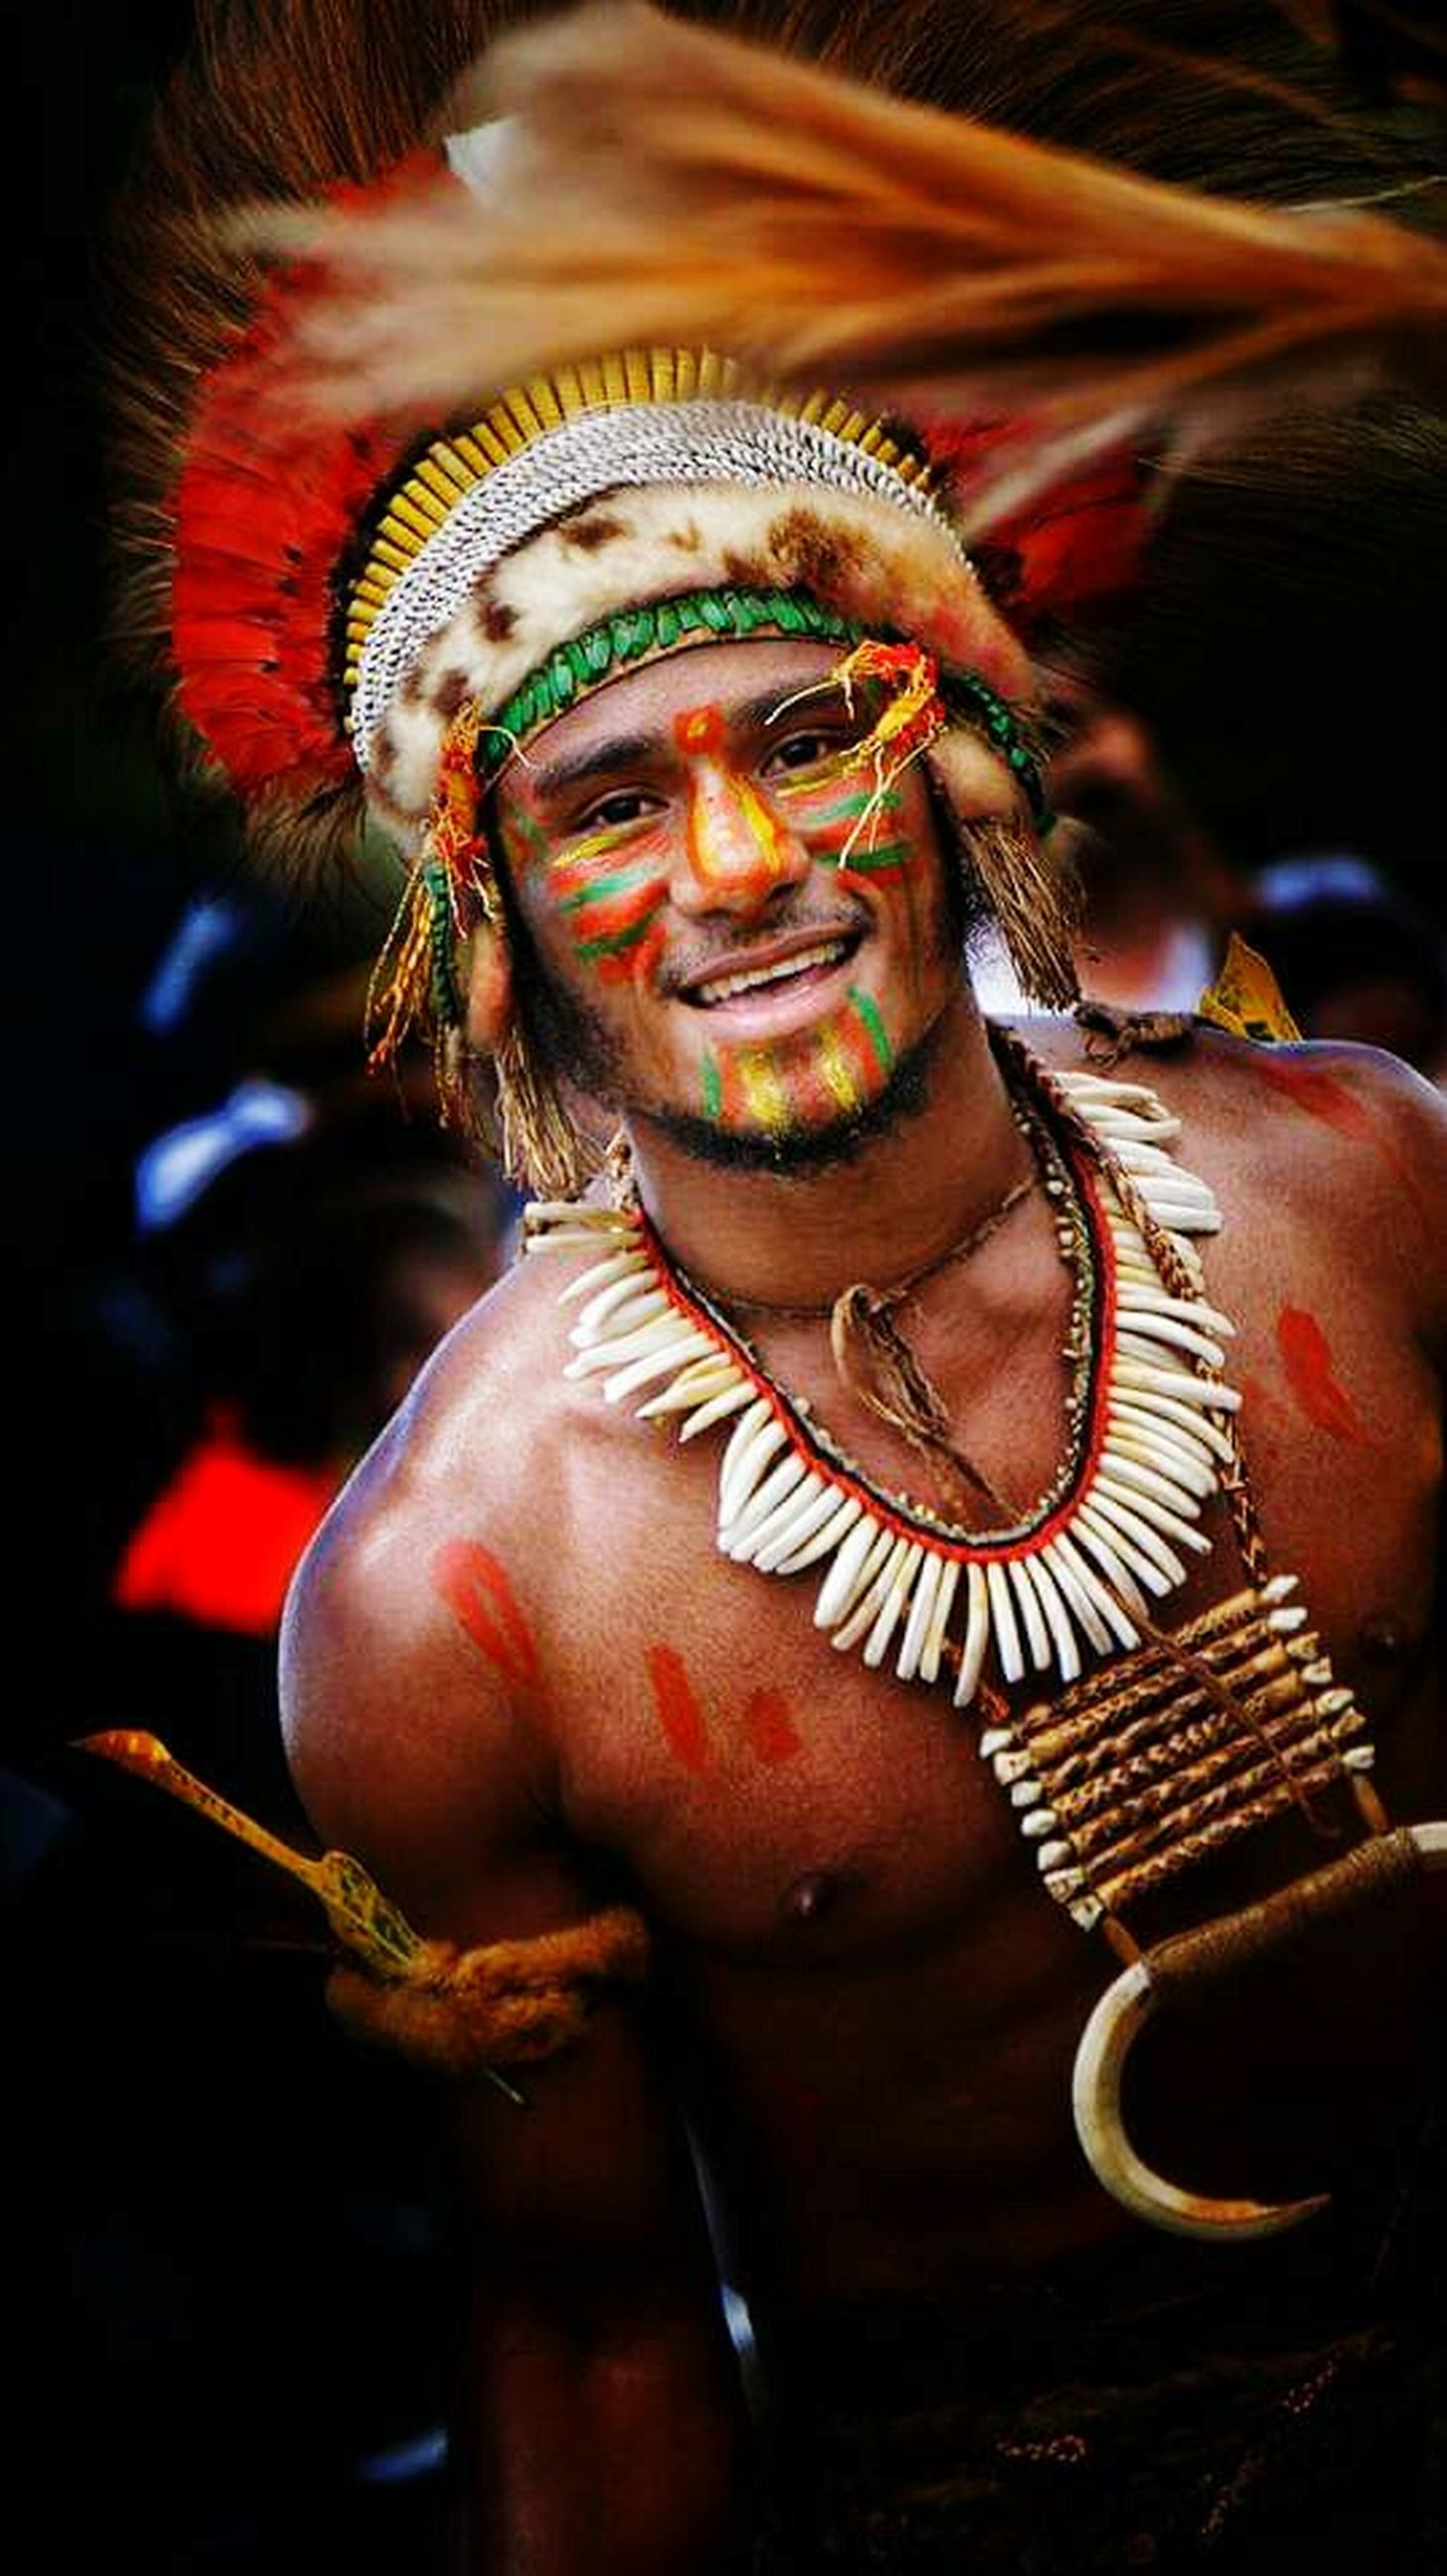 one person, adult, celebration, men, smiling, traditional clothing, clothing, event, face paint, males, portrait, dancing, headwear, performance, mature adult, emotion, happiness, headdress, mature men